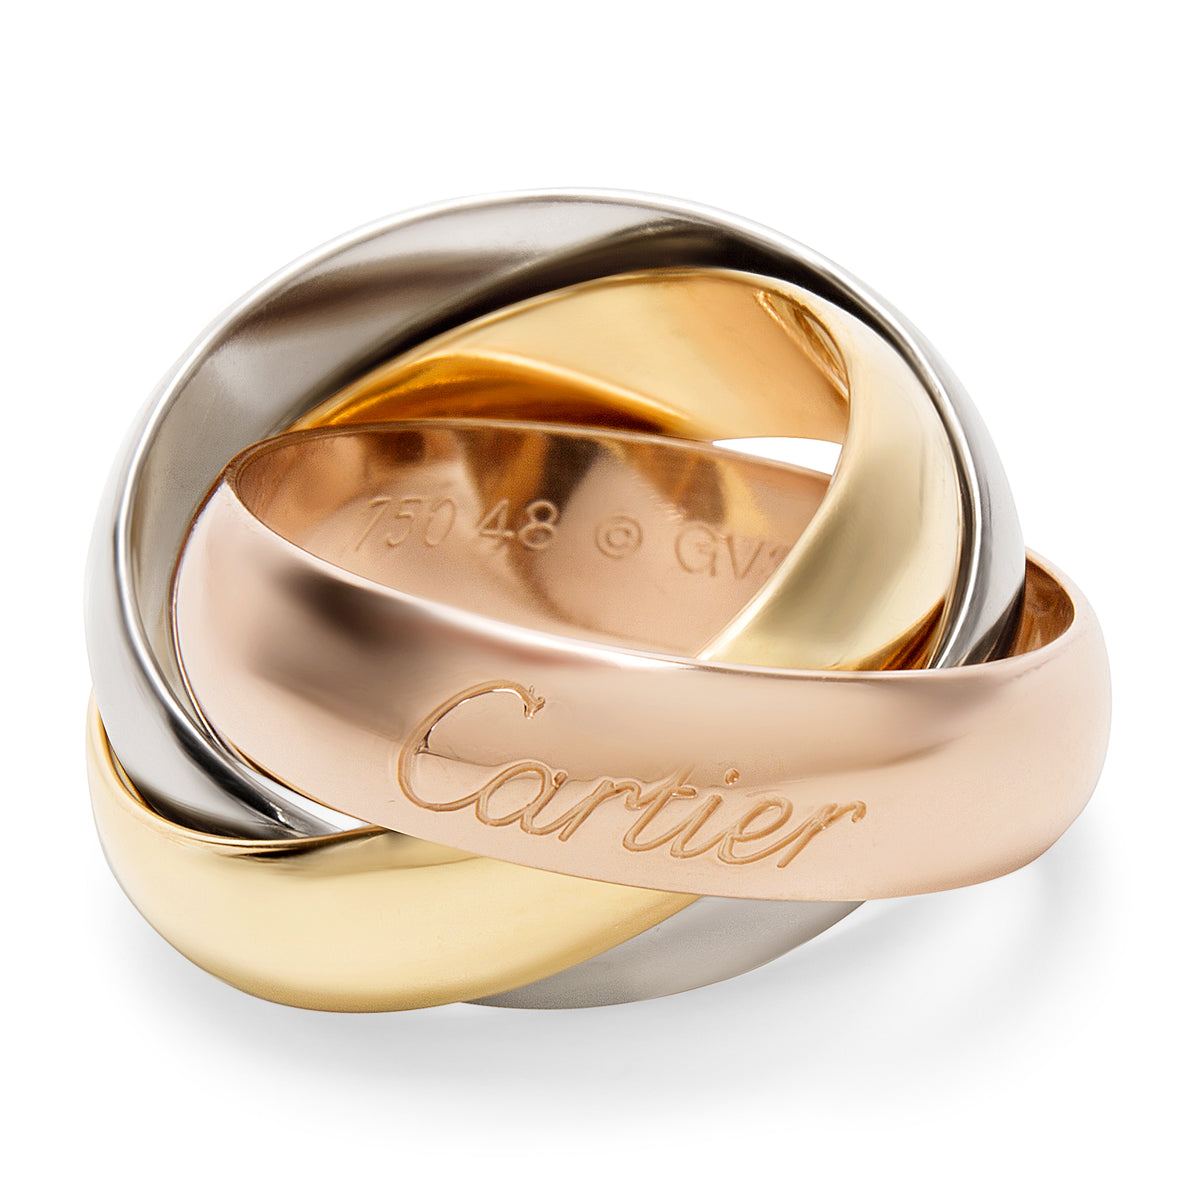 Cartier Trinity Large Model Ring in 18K Yellow, White & Rose Gold (Size 48)